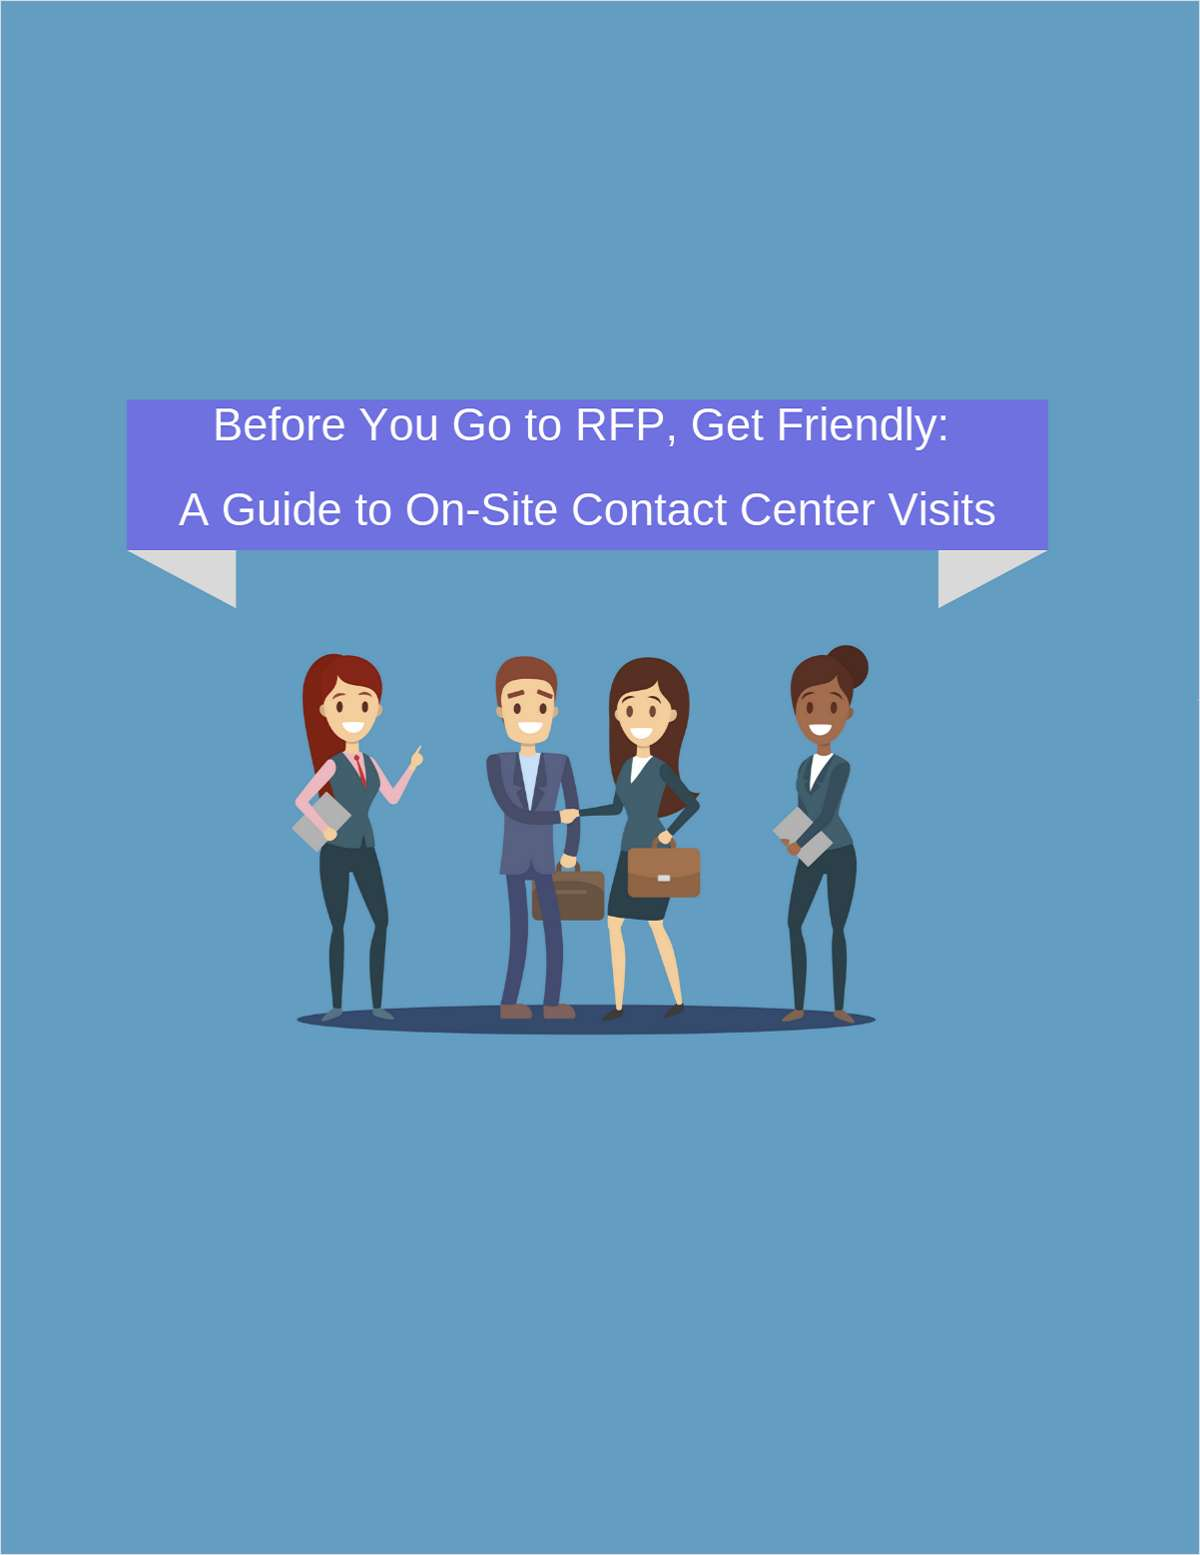 Before You Go to RFP, Get Friendly: A Guide to On-Site Contact Center Visits